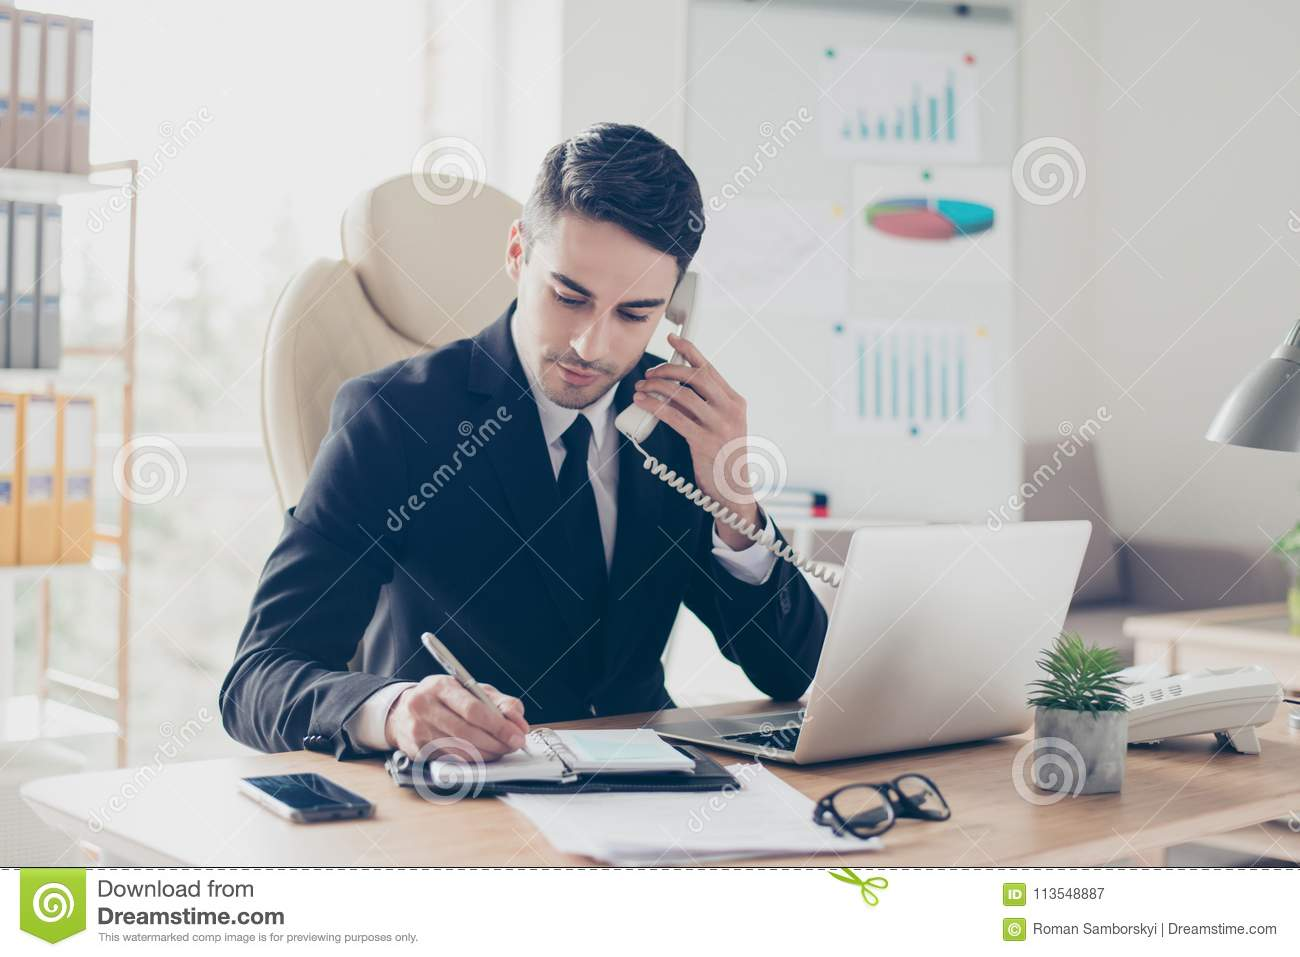 Portrait of focused confident concentrated smart intelligent clever busy expert specialist assistant giving recommendations advice